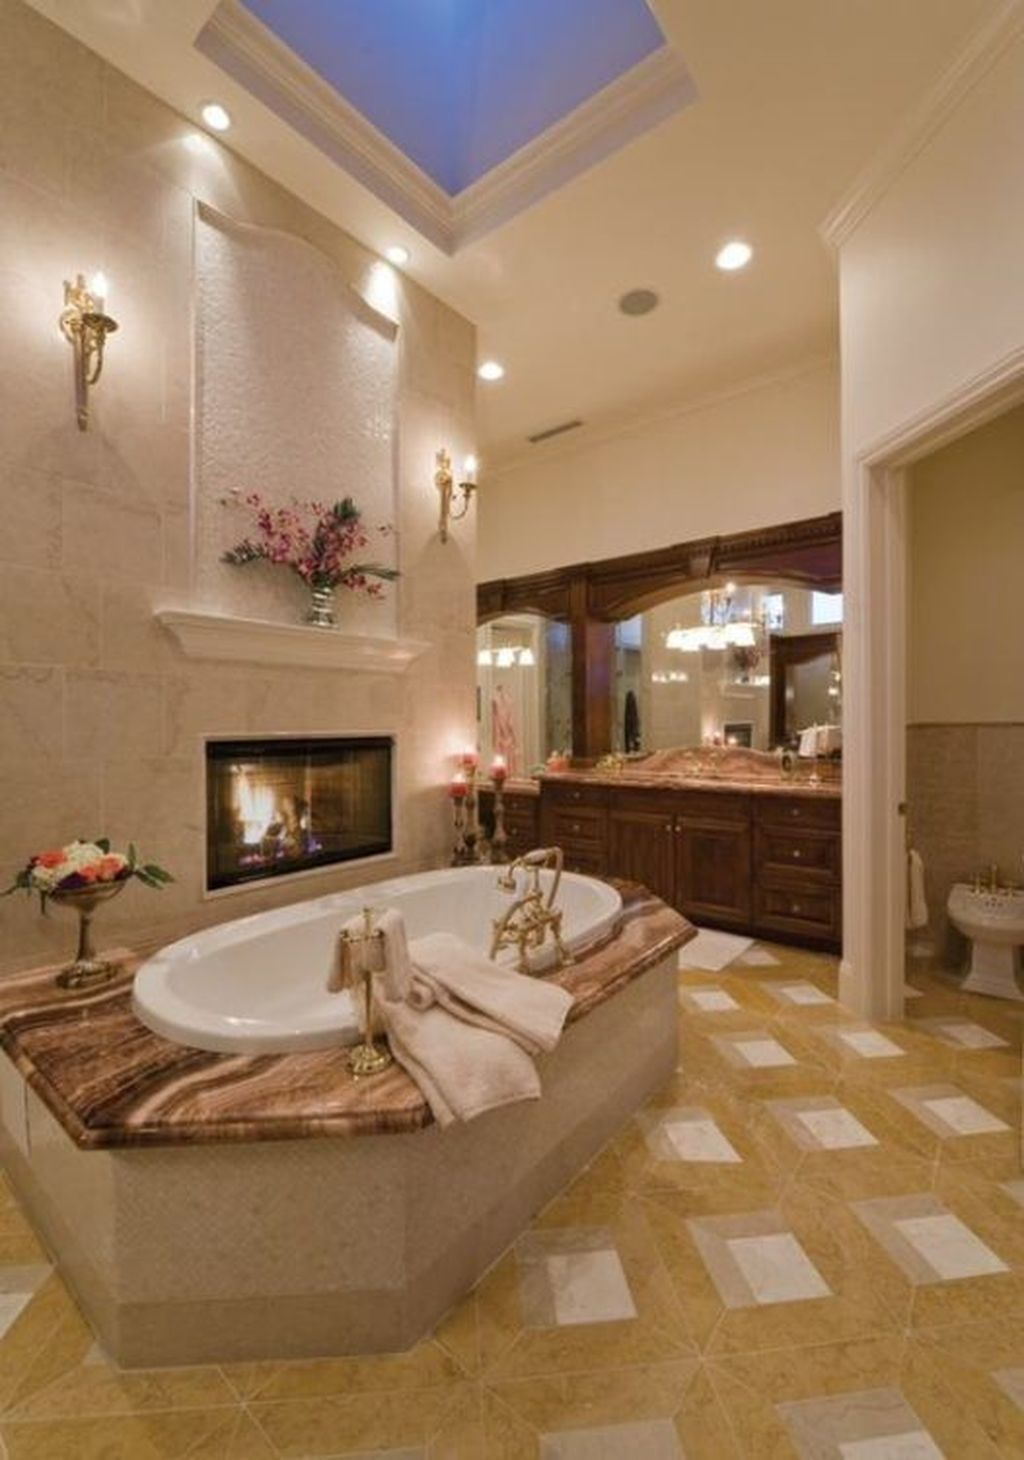 Luxury Bathroom Design And Decor Ideas 18